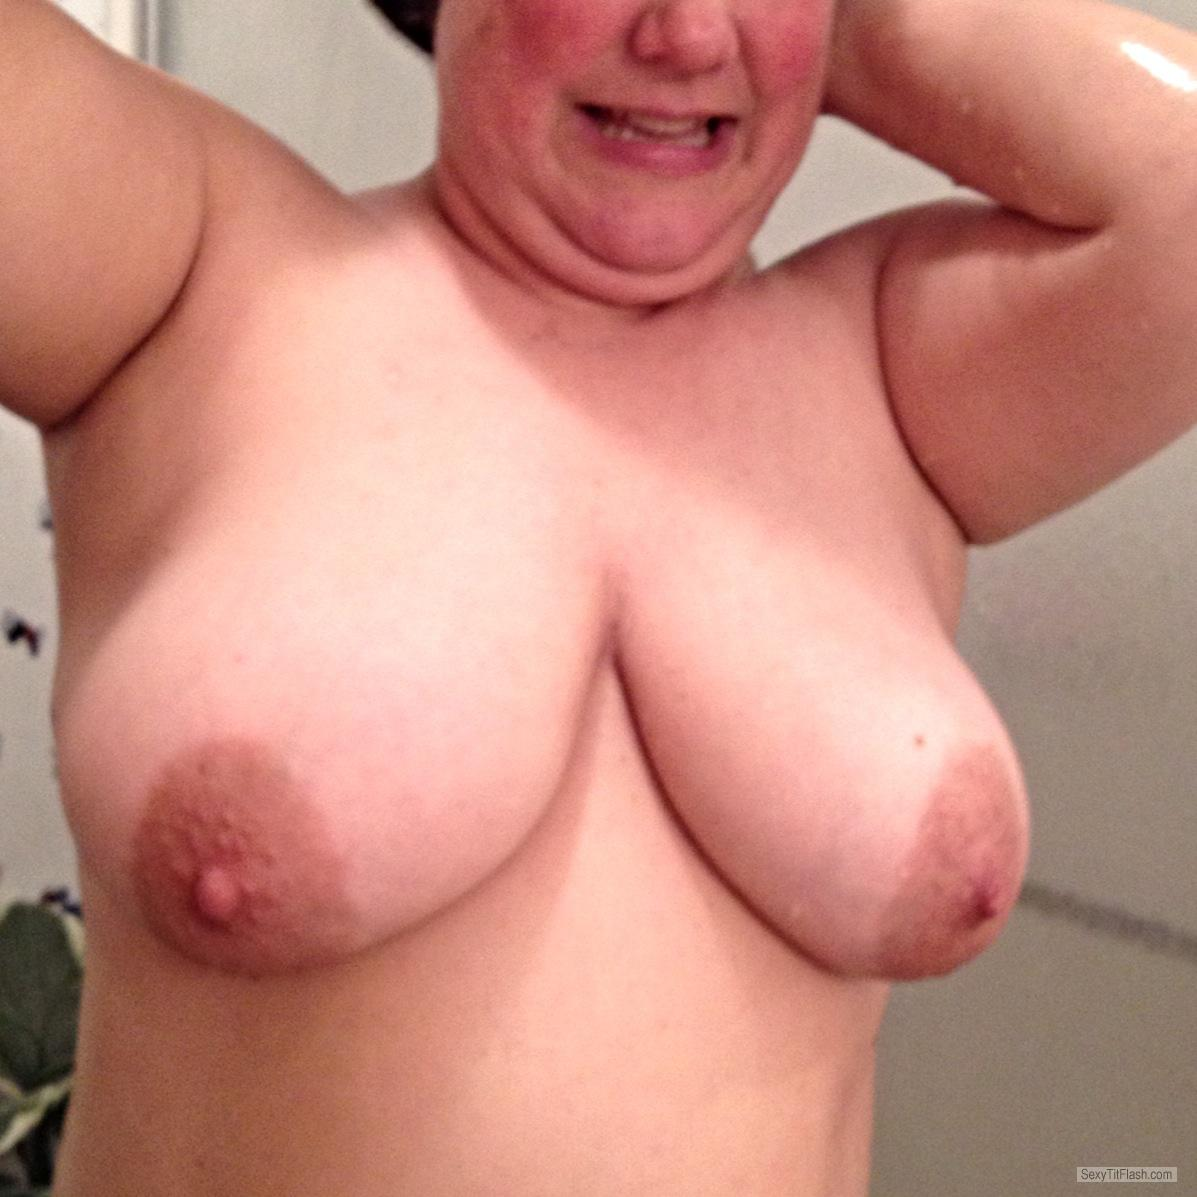 Big Tits Of My Wife Occ3